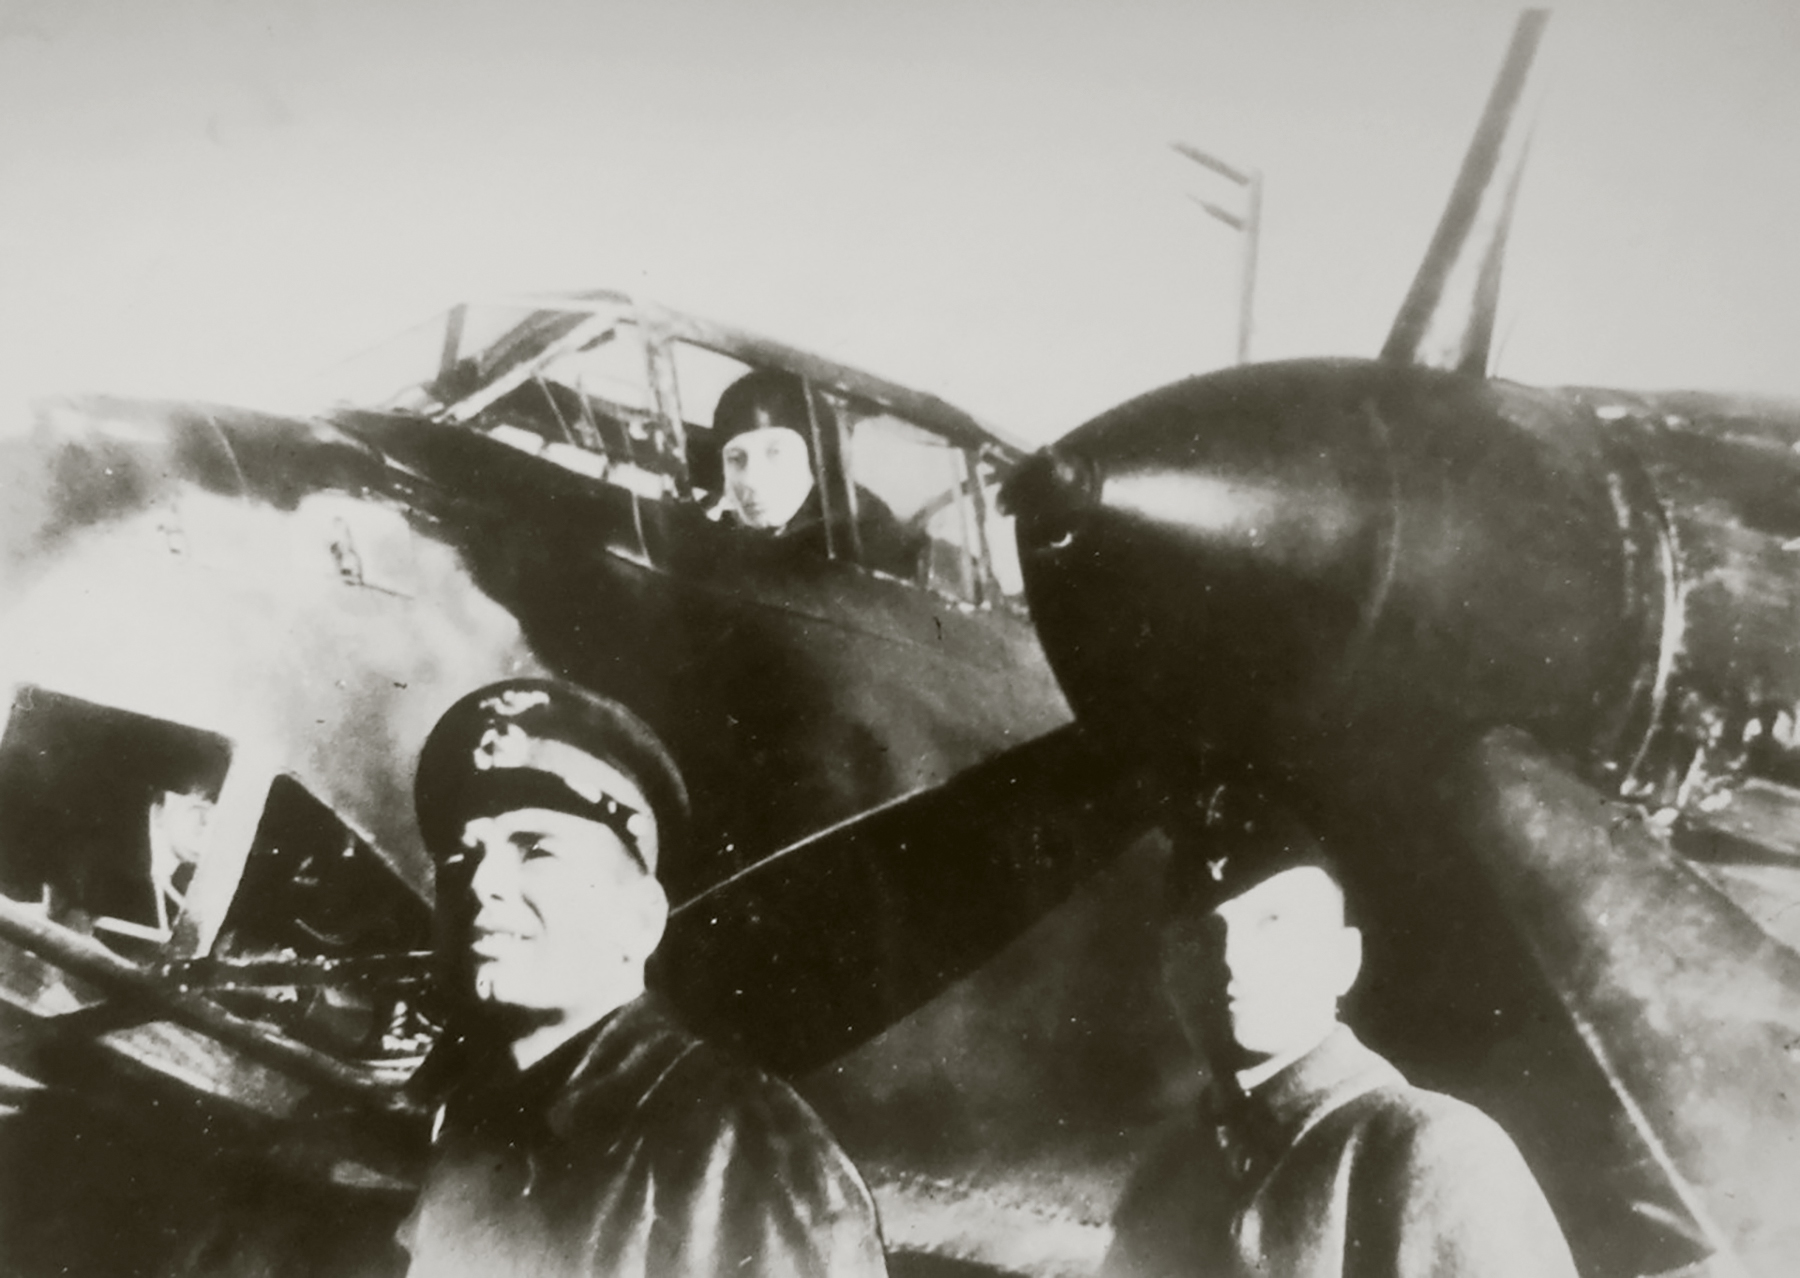 Aircrew Soviet 48GAPDr with group personnel 01